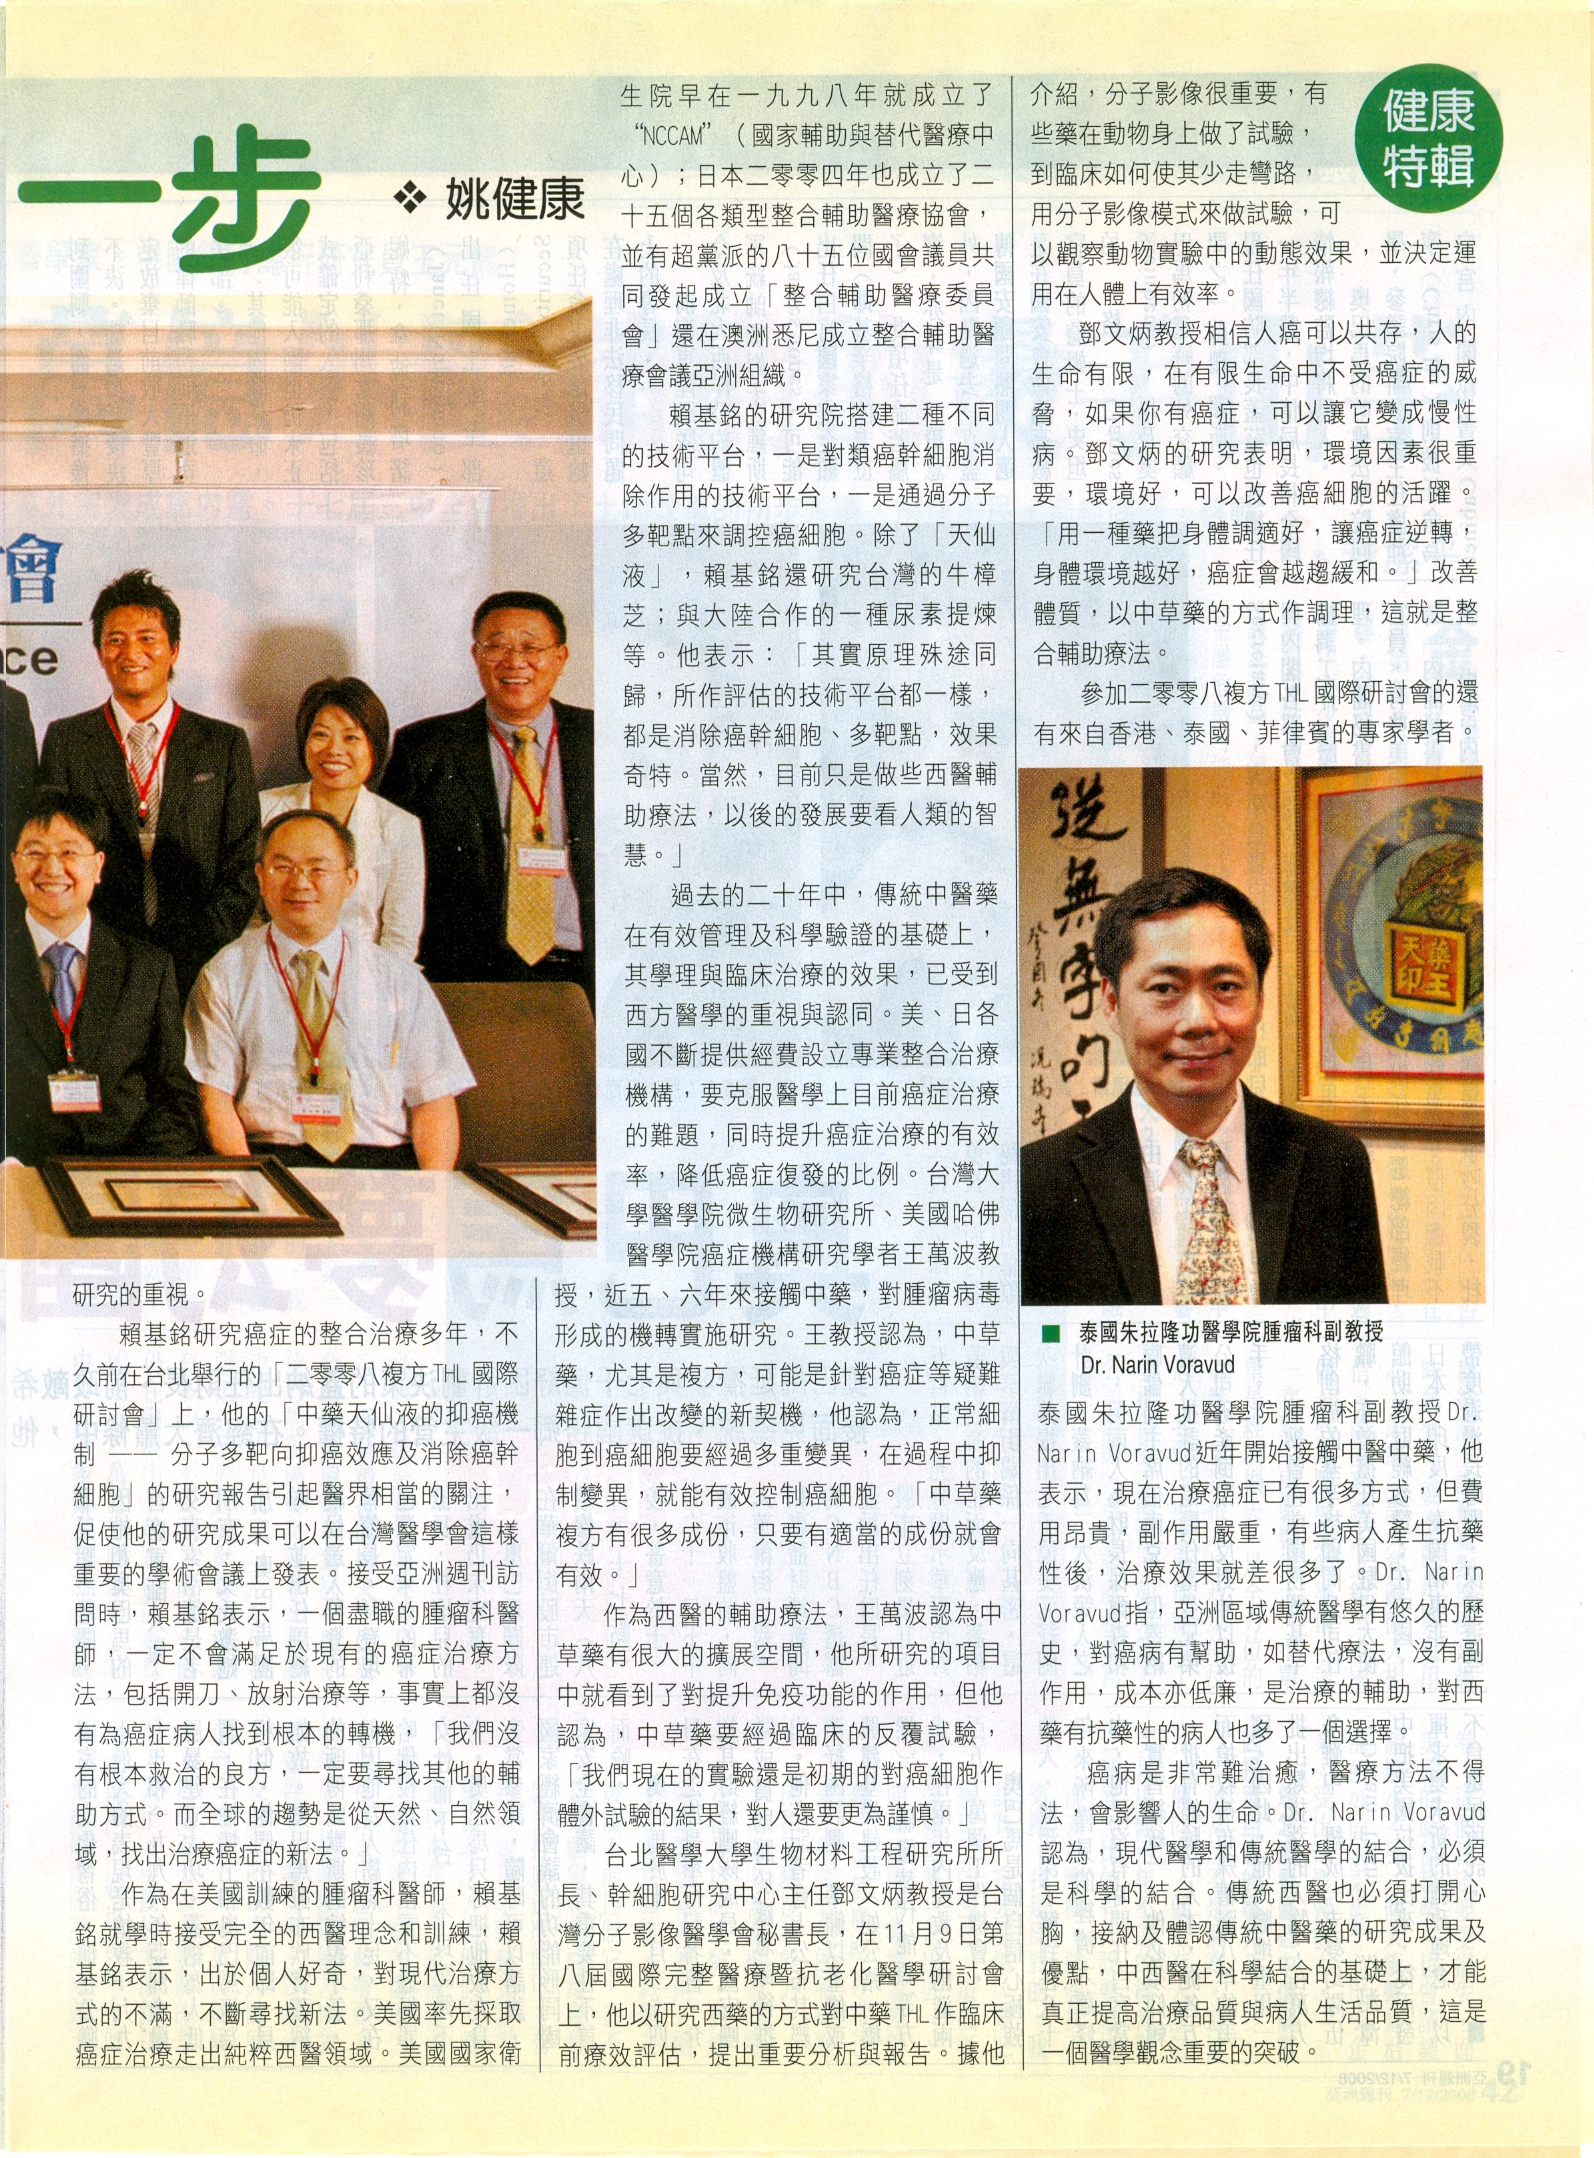 20081207-Asiaweek-002